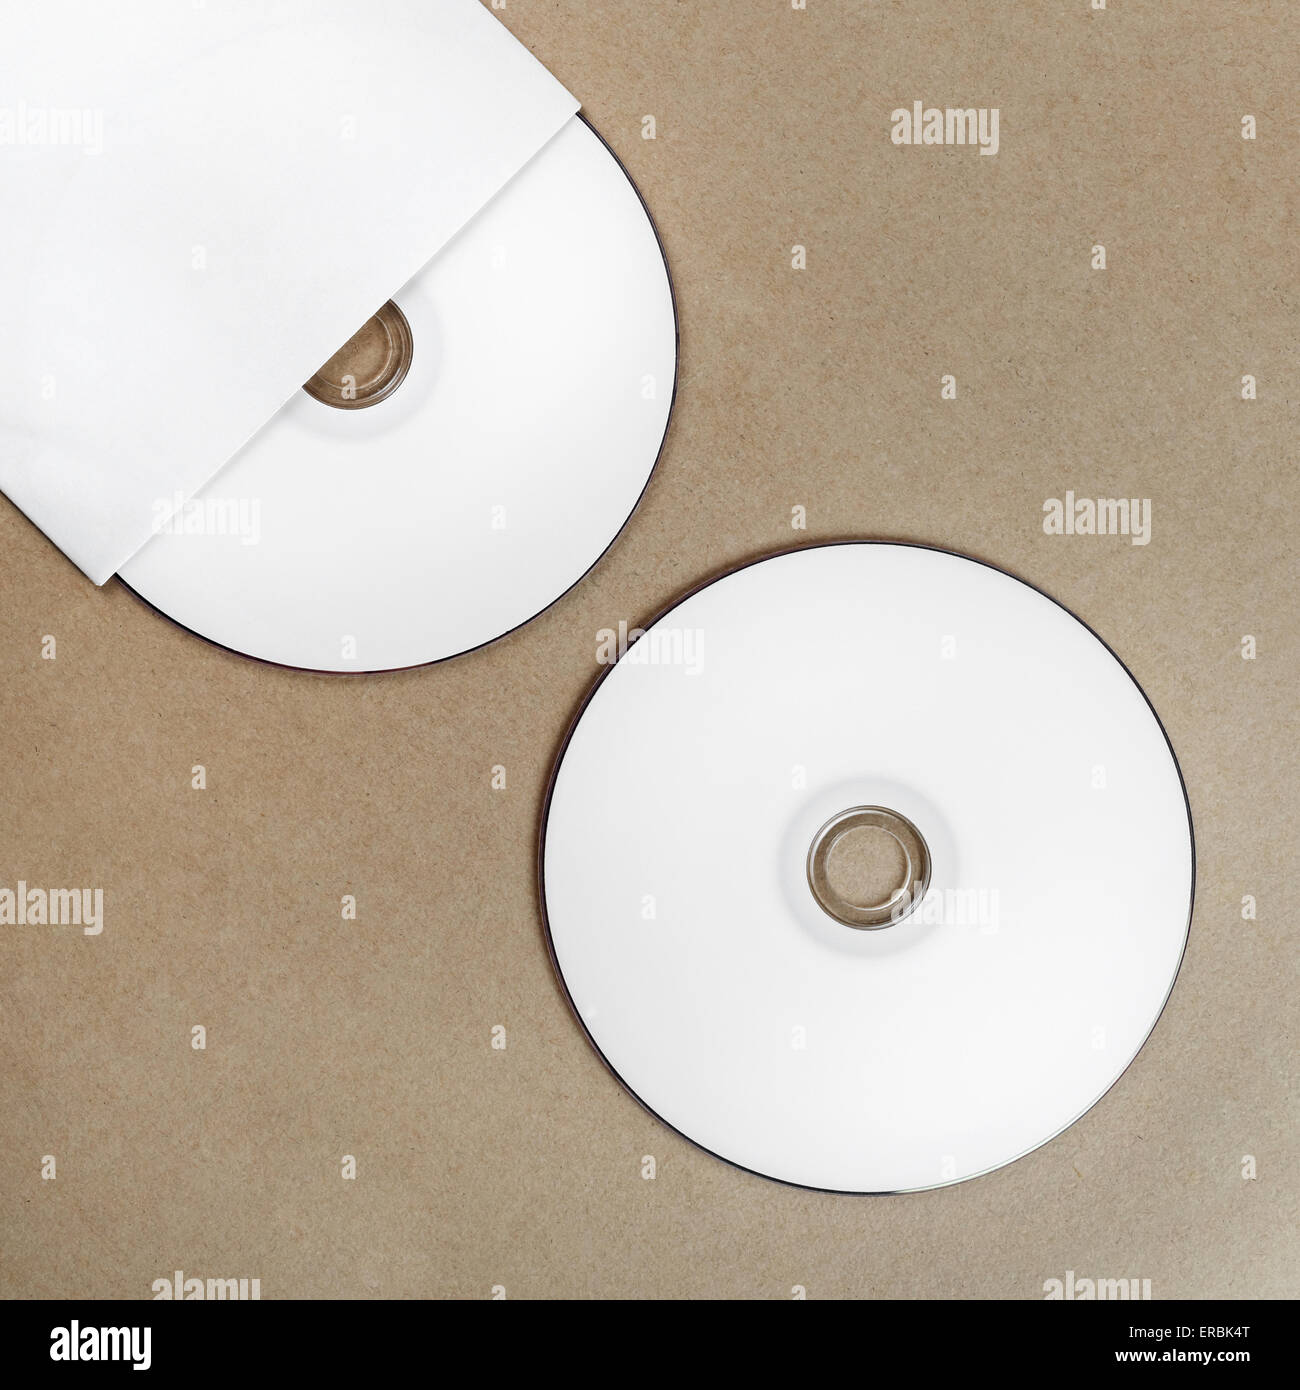 Photo Of Blank Compact Disk On A Table. Template For Branding Identity For  Designers. Top View.